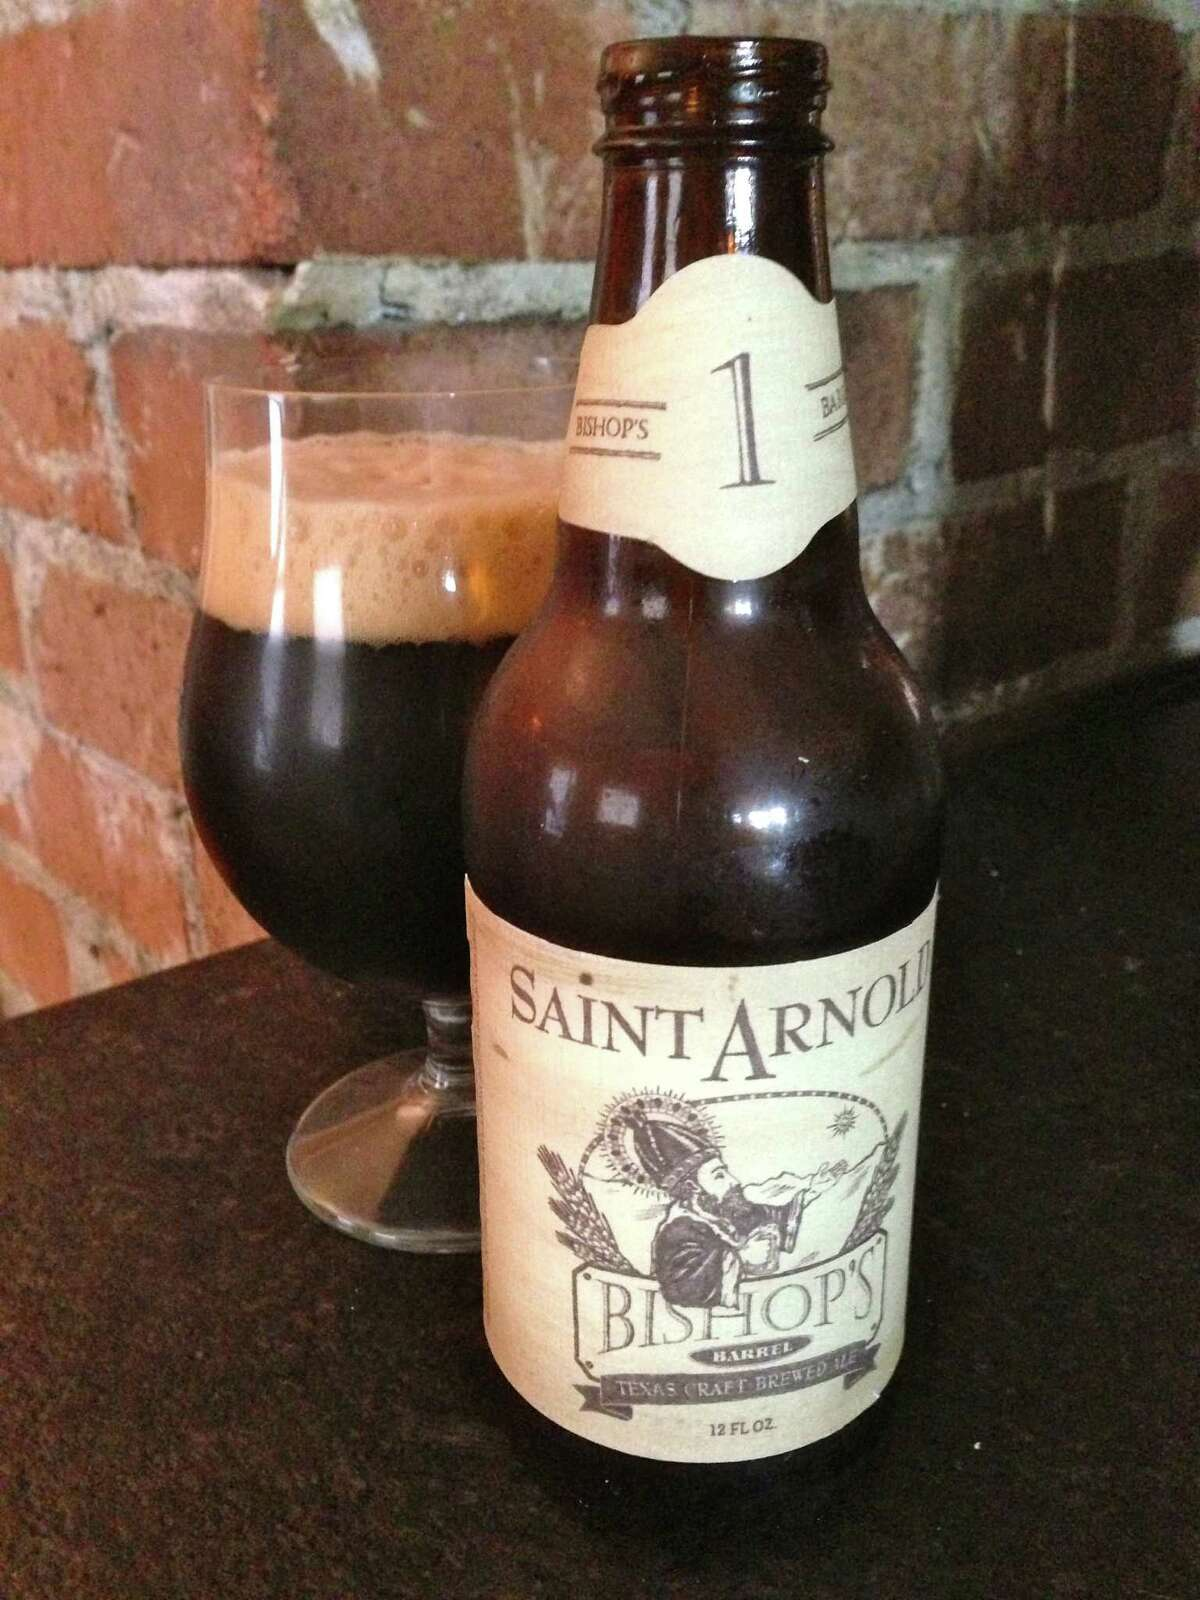 The first in Saint Arnold Brewing's Bishop's Barrel series of barrel-aged beers is scheduled for release in pubs and restaurants on Nov. 5, 2012.